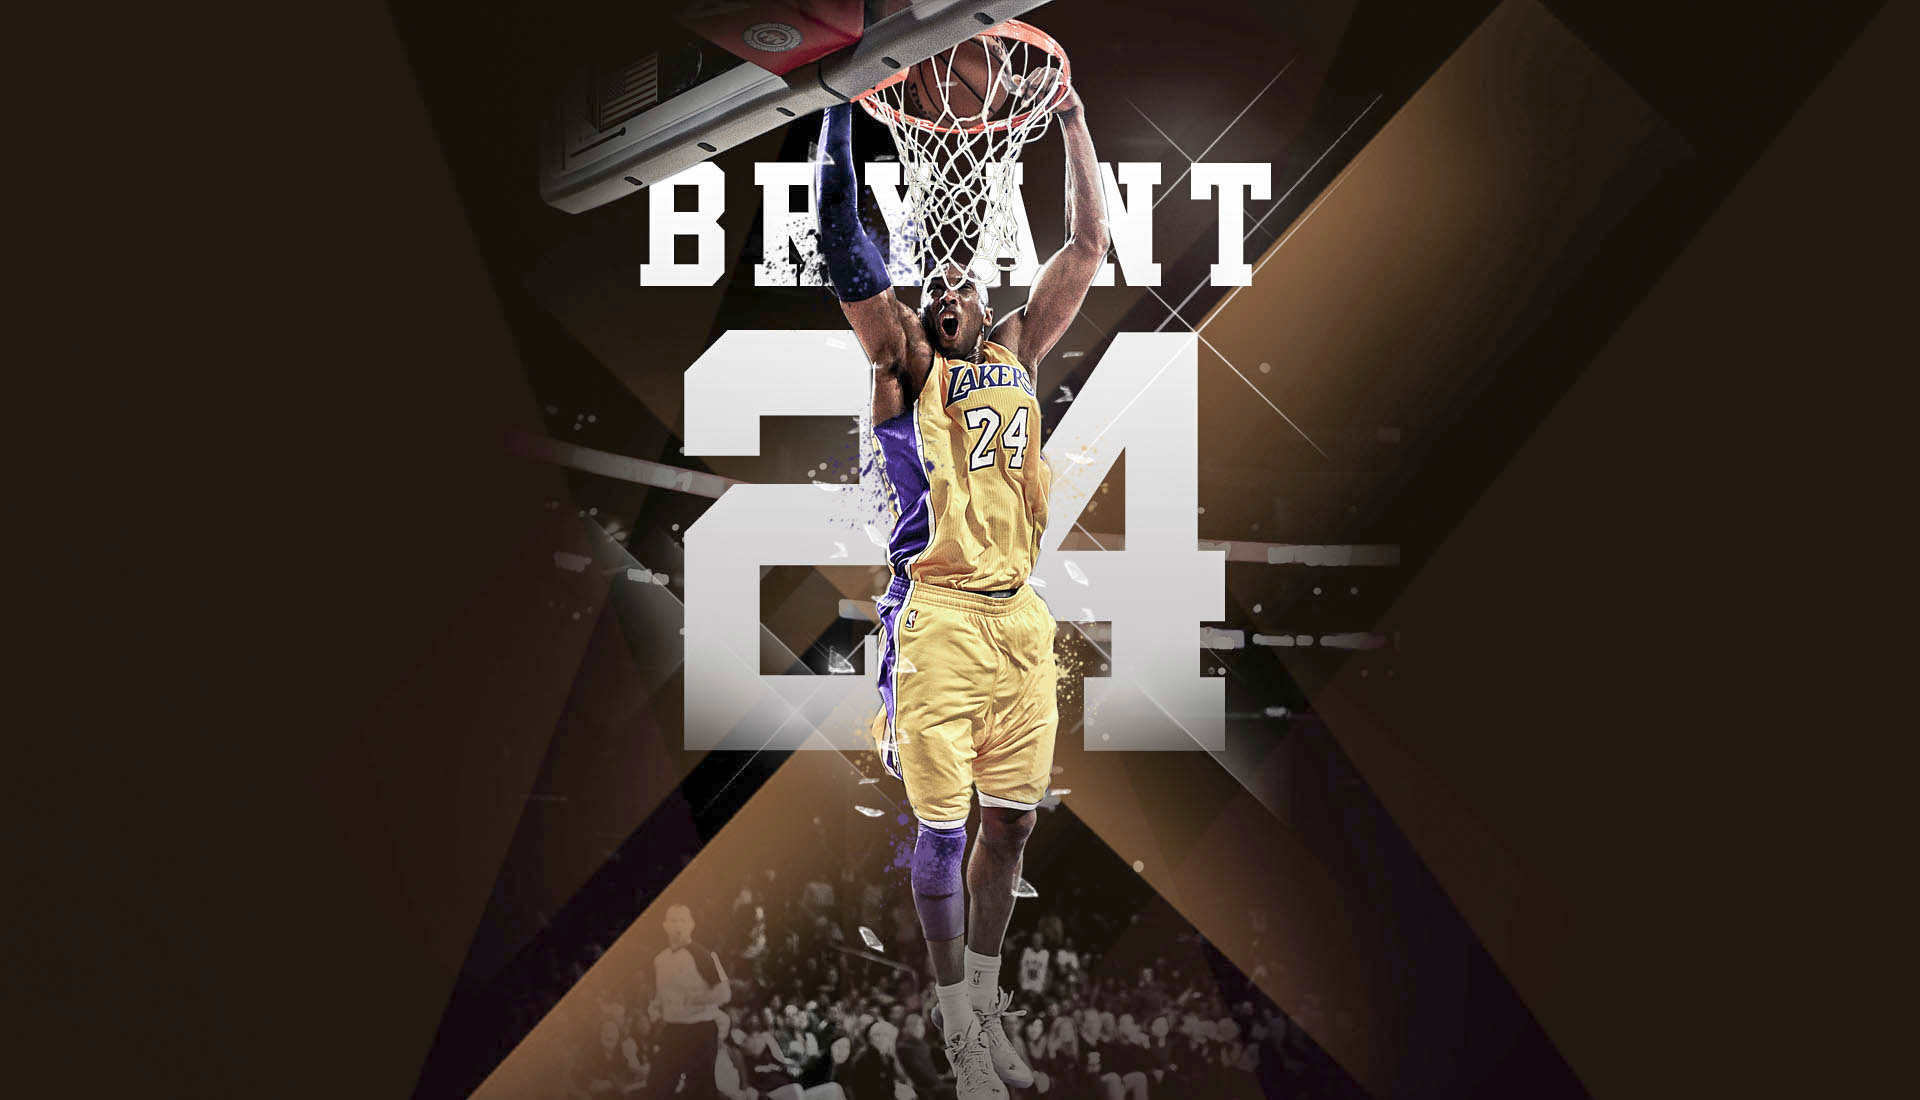 Kobe bryant new beautiful hd wallpapers all hd wallpapers kobe bryant 2 voltagebd Gallery